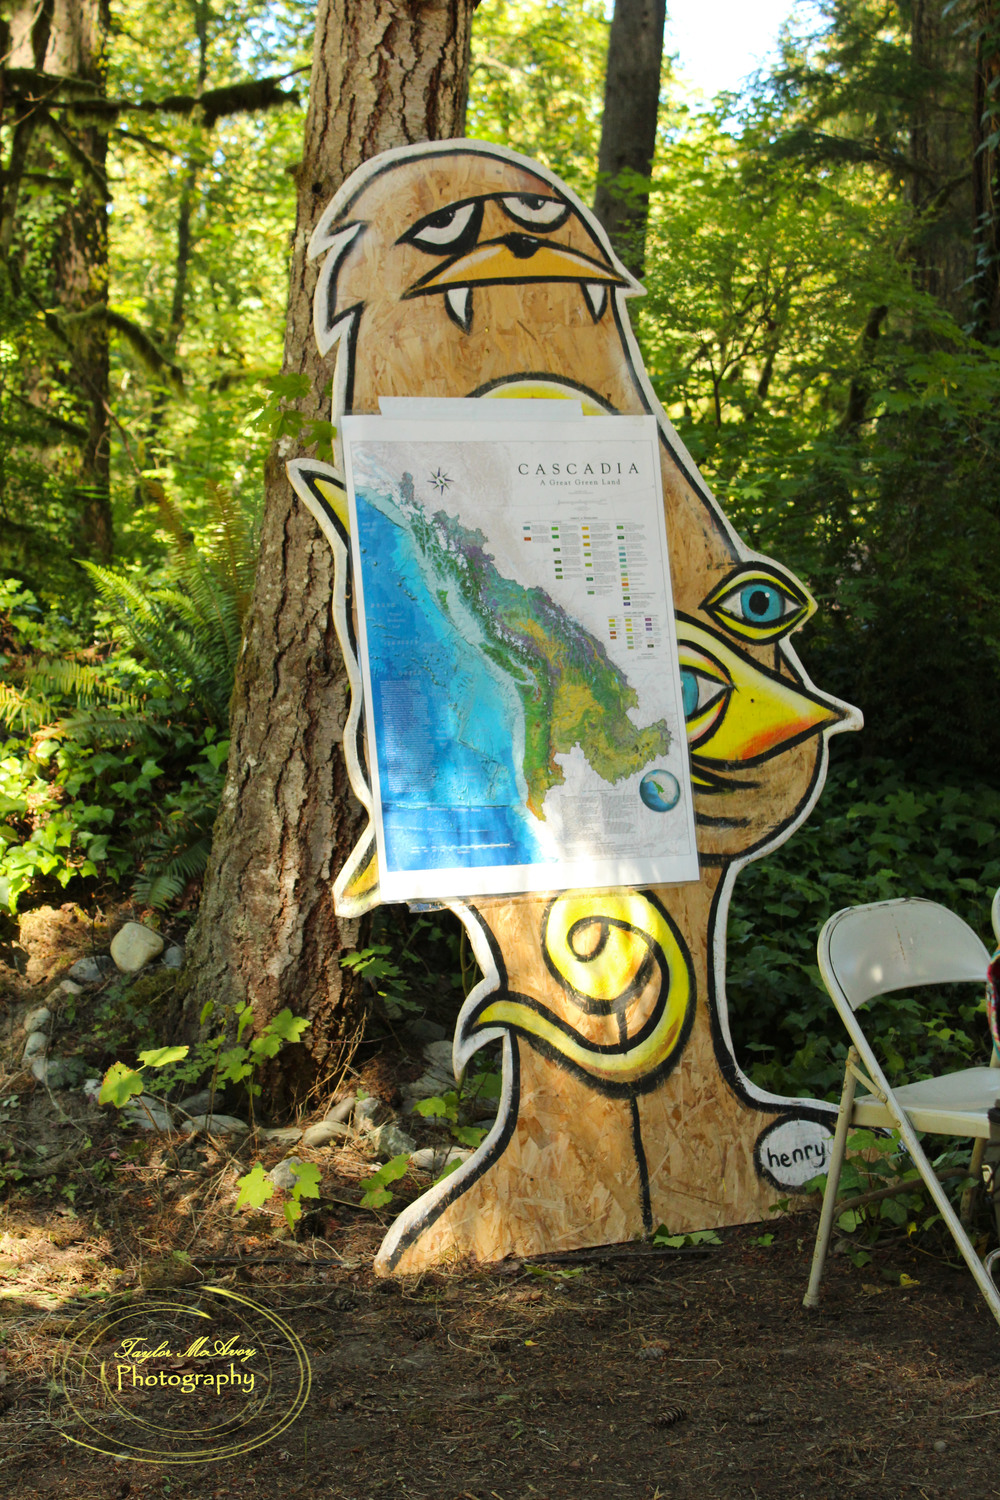 Our resident Sasquatch was one of the few surrounding camp, seen here holding the map of the Cascadia bio-region for Brandon Letsinger's workshop. The Sasquatch and octopus was painted by Seattle artist Ryan Henry Ward.